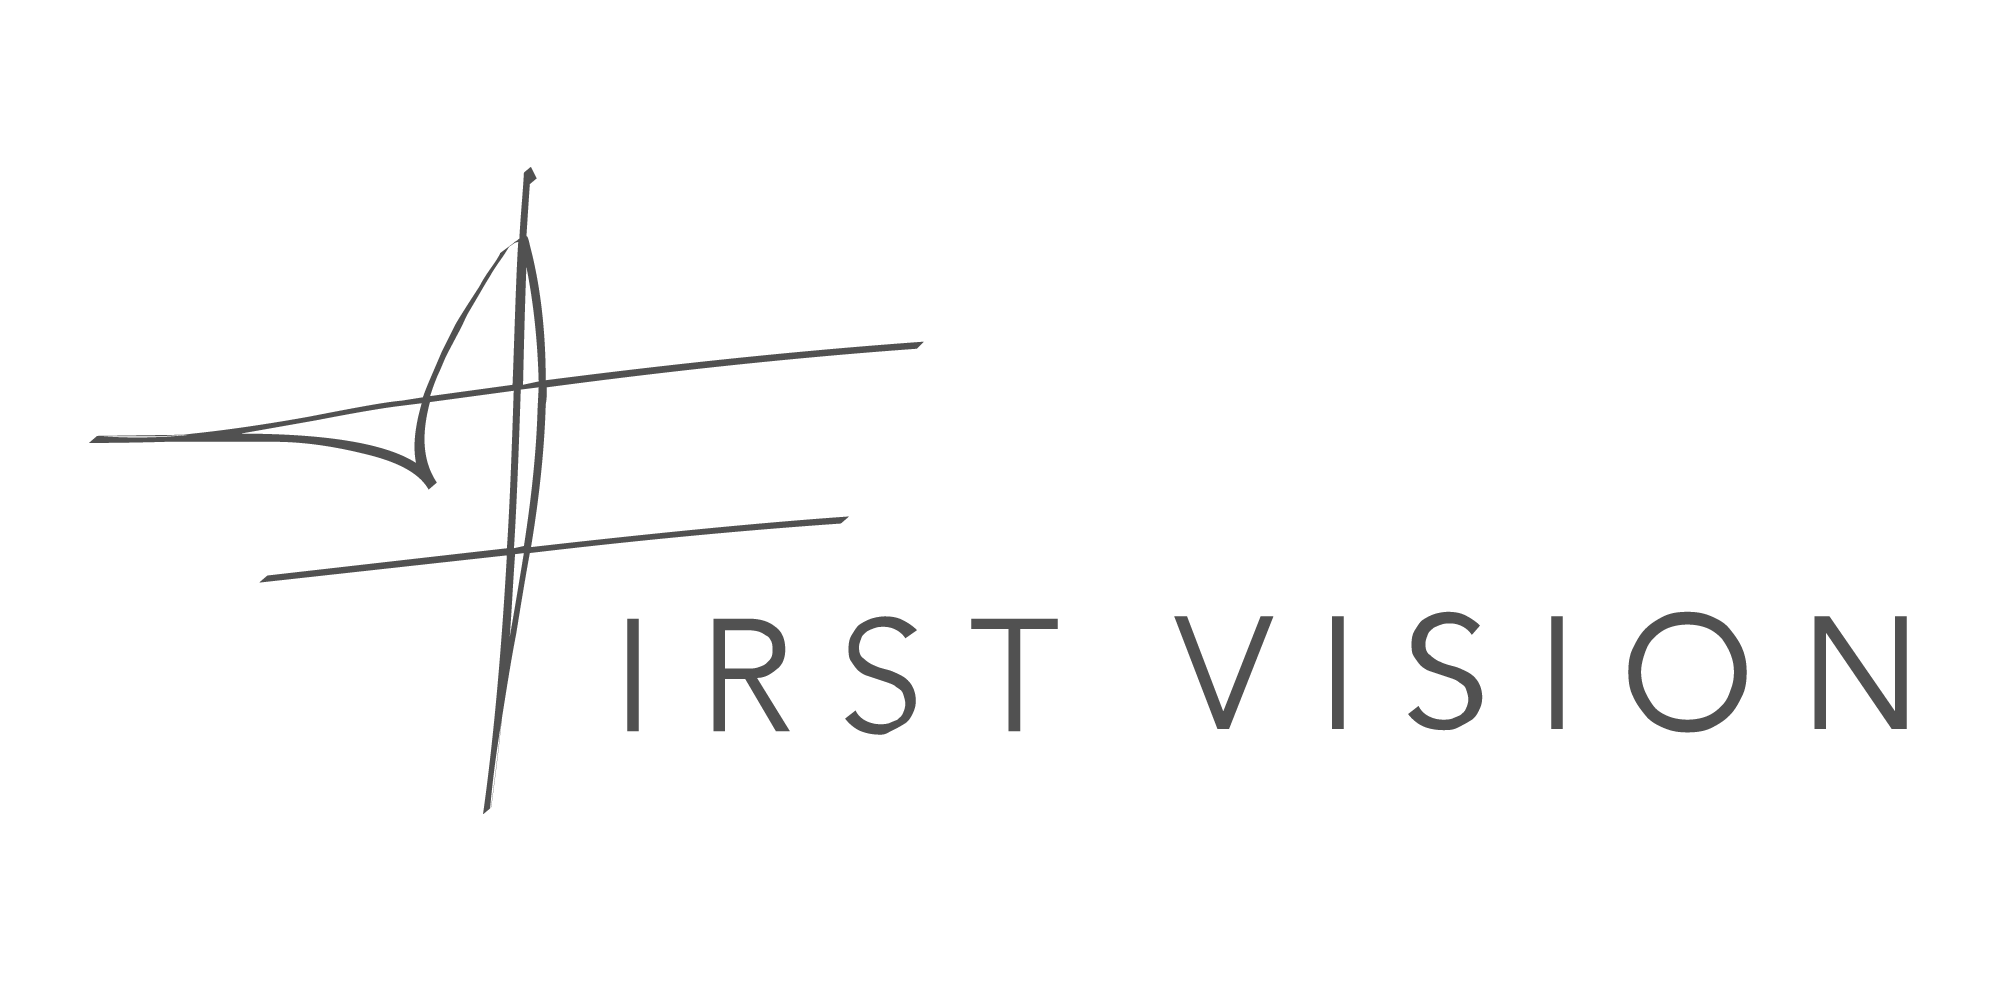 First Vision